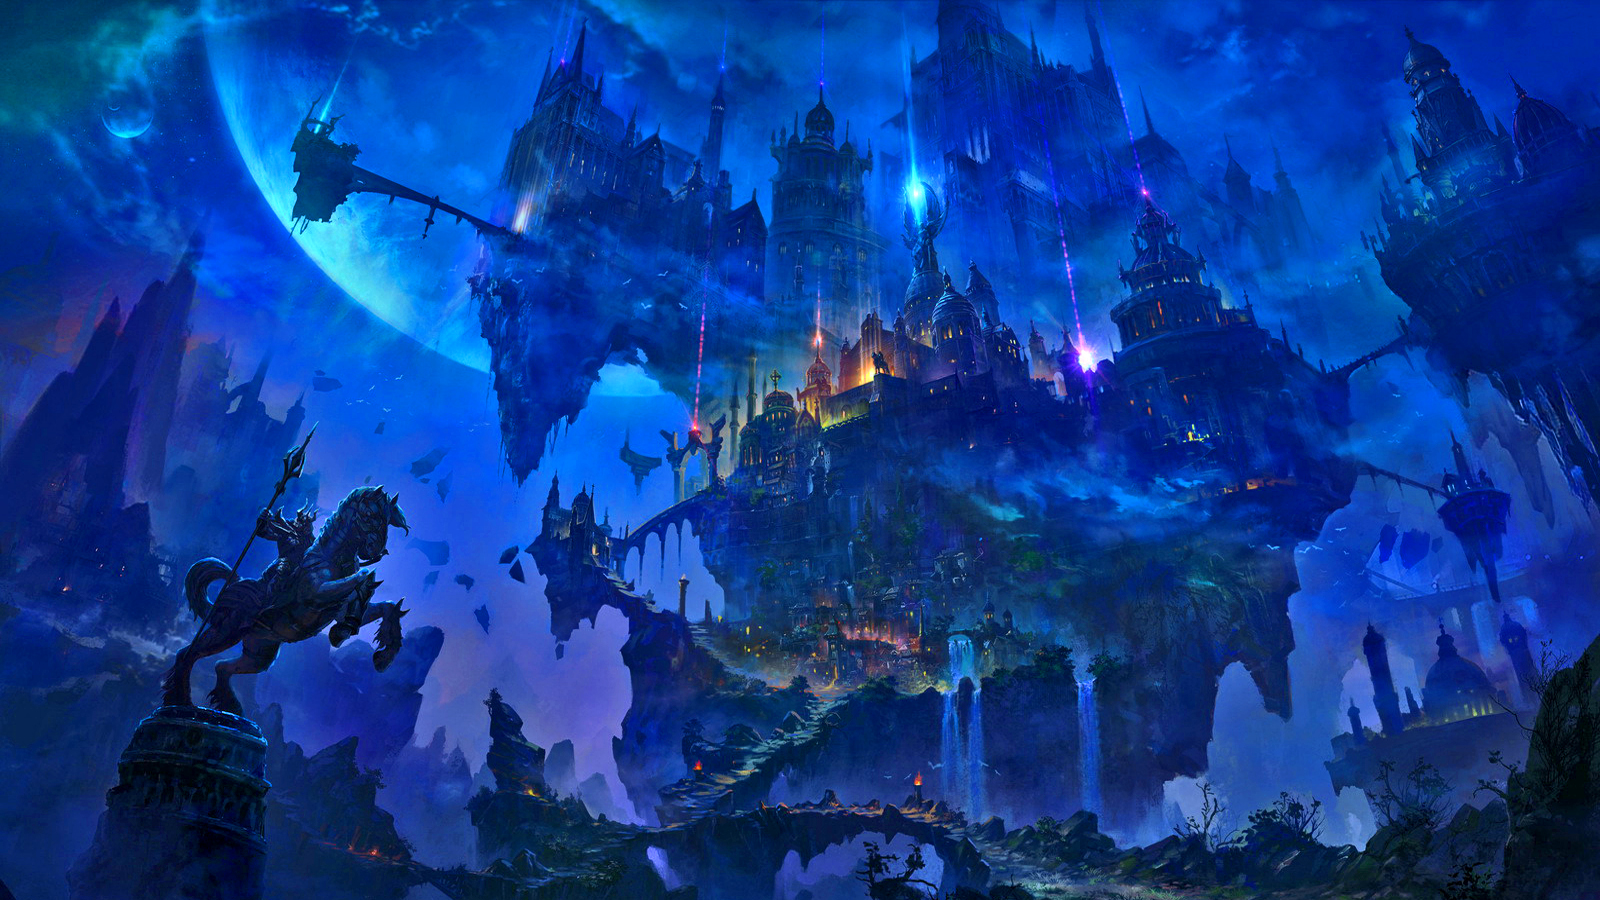 Fantasy City Wallpaper Hd: Aurora Temple Wallpaper And Background Image